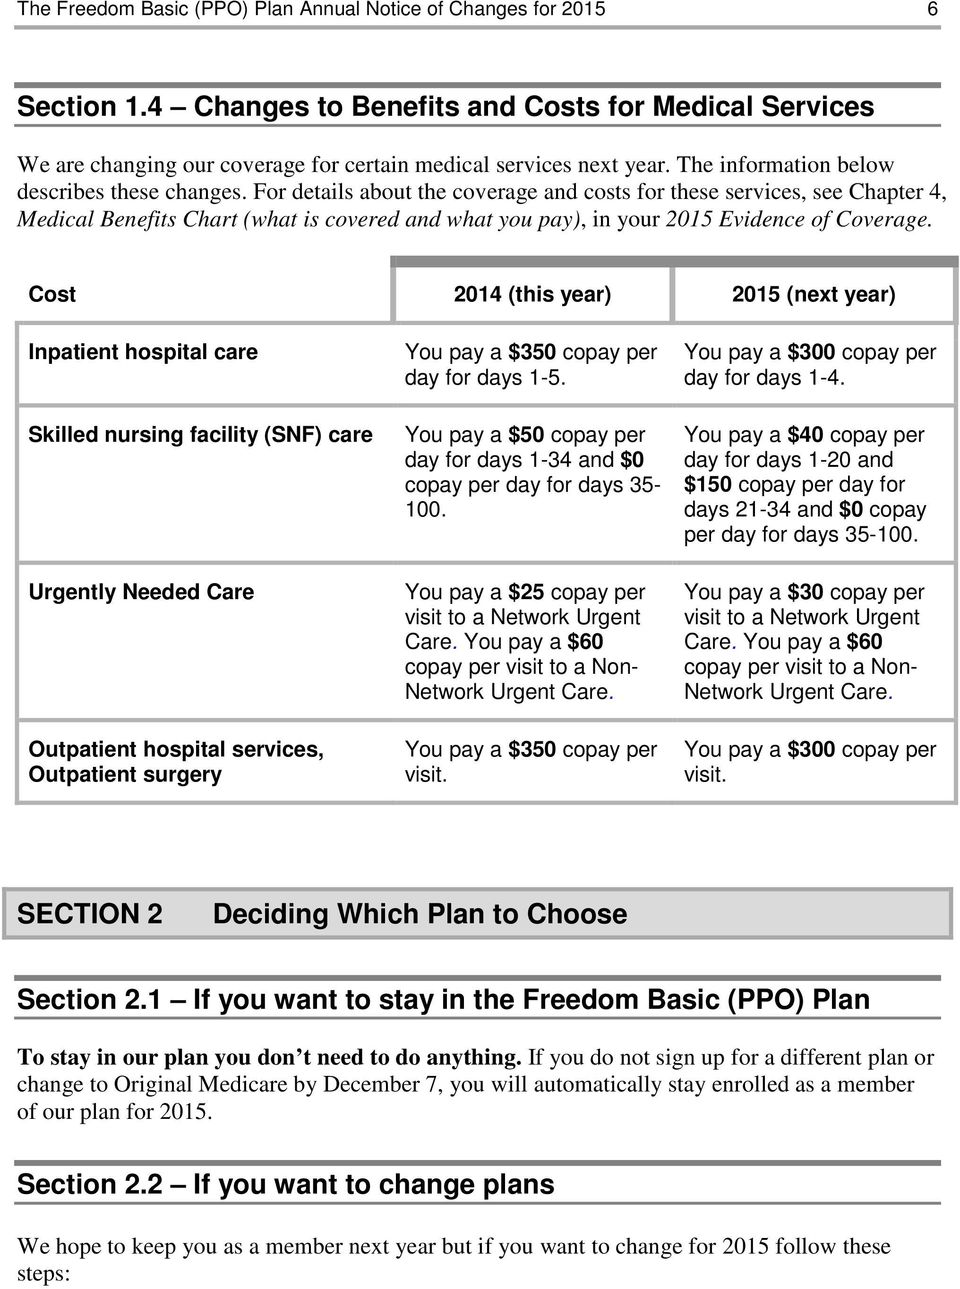 For details about the coverage and costs for these services, see Chapter 4, Medical Benefits Chart (what is covered and what you pay), in your 2015 Evidence of Coverage.